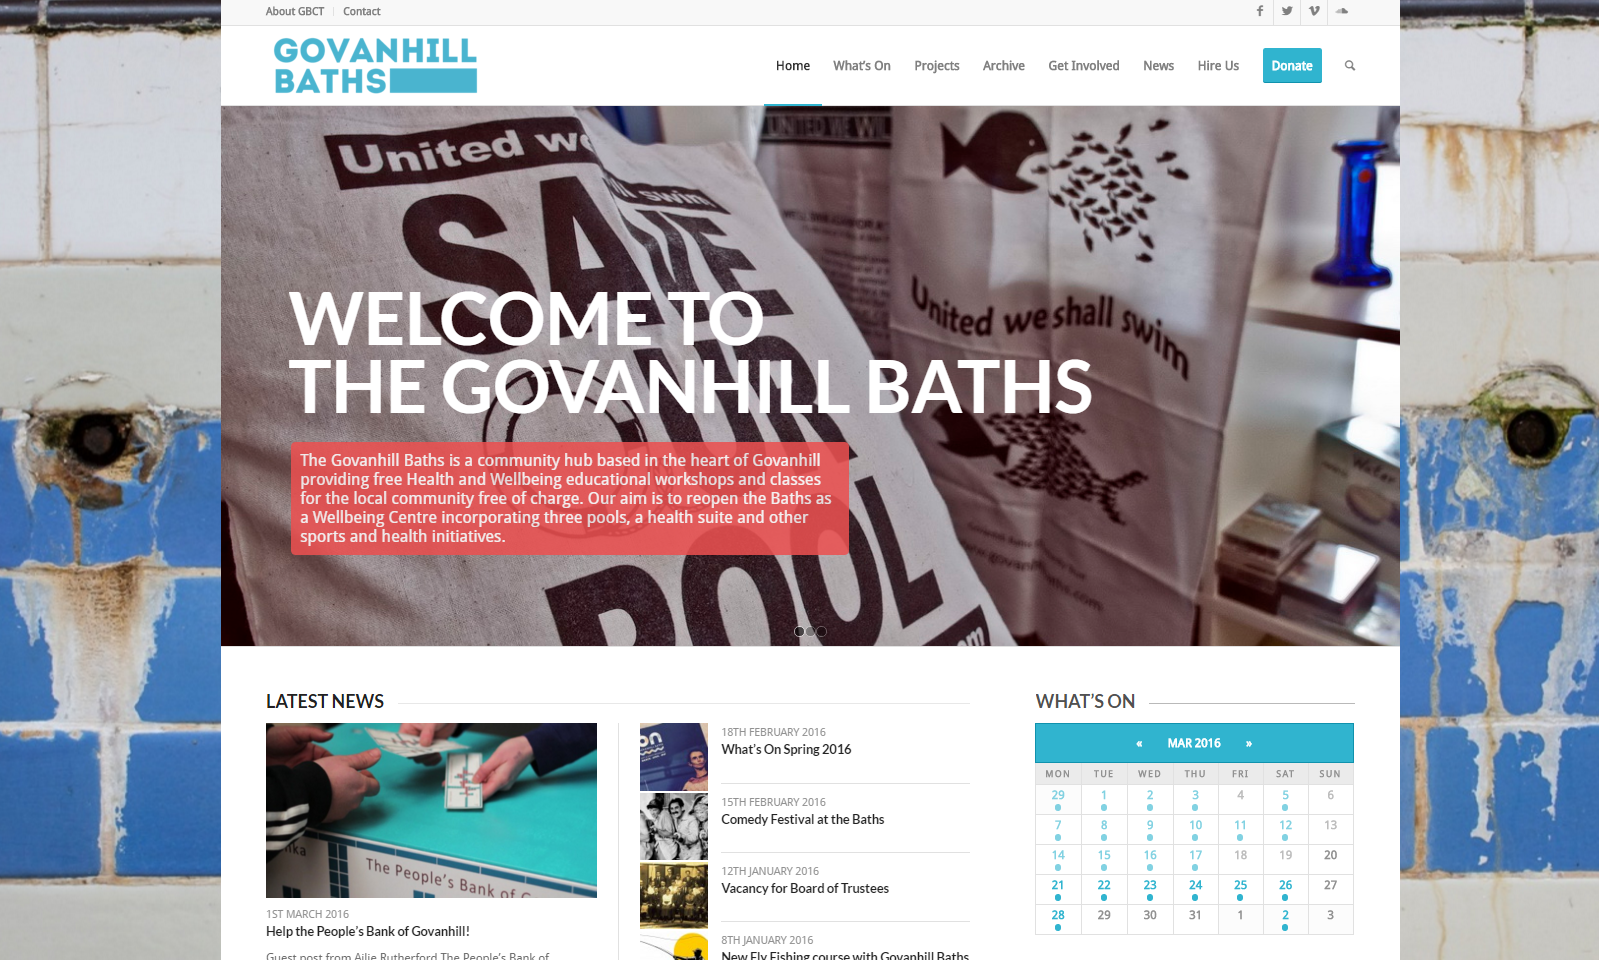 Govanhill Baths   A community hub based in the heart of Govanhill